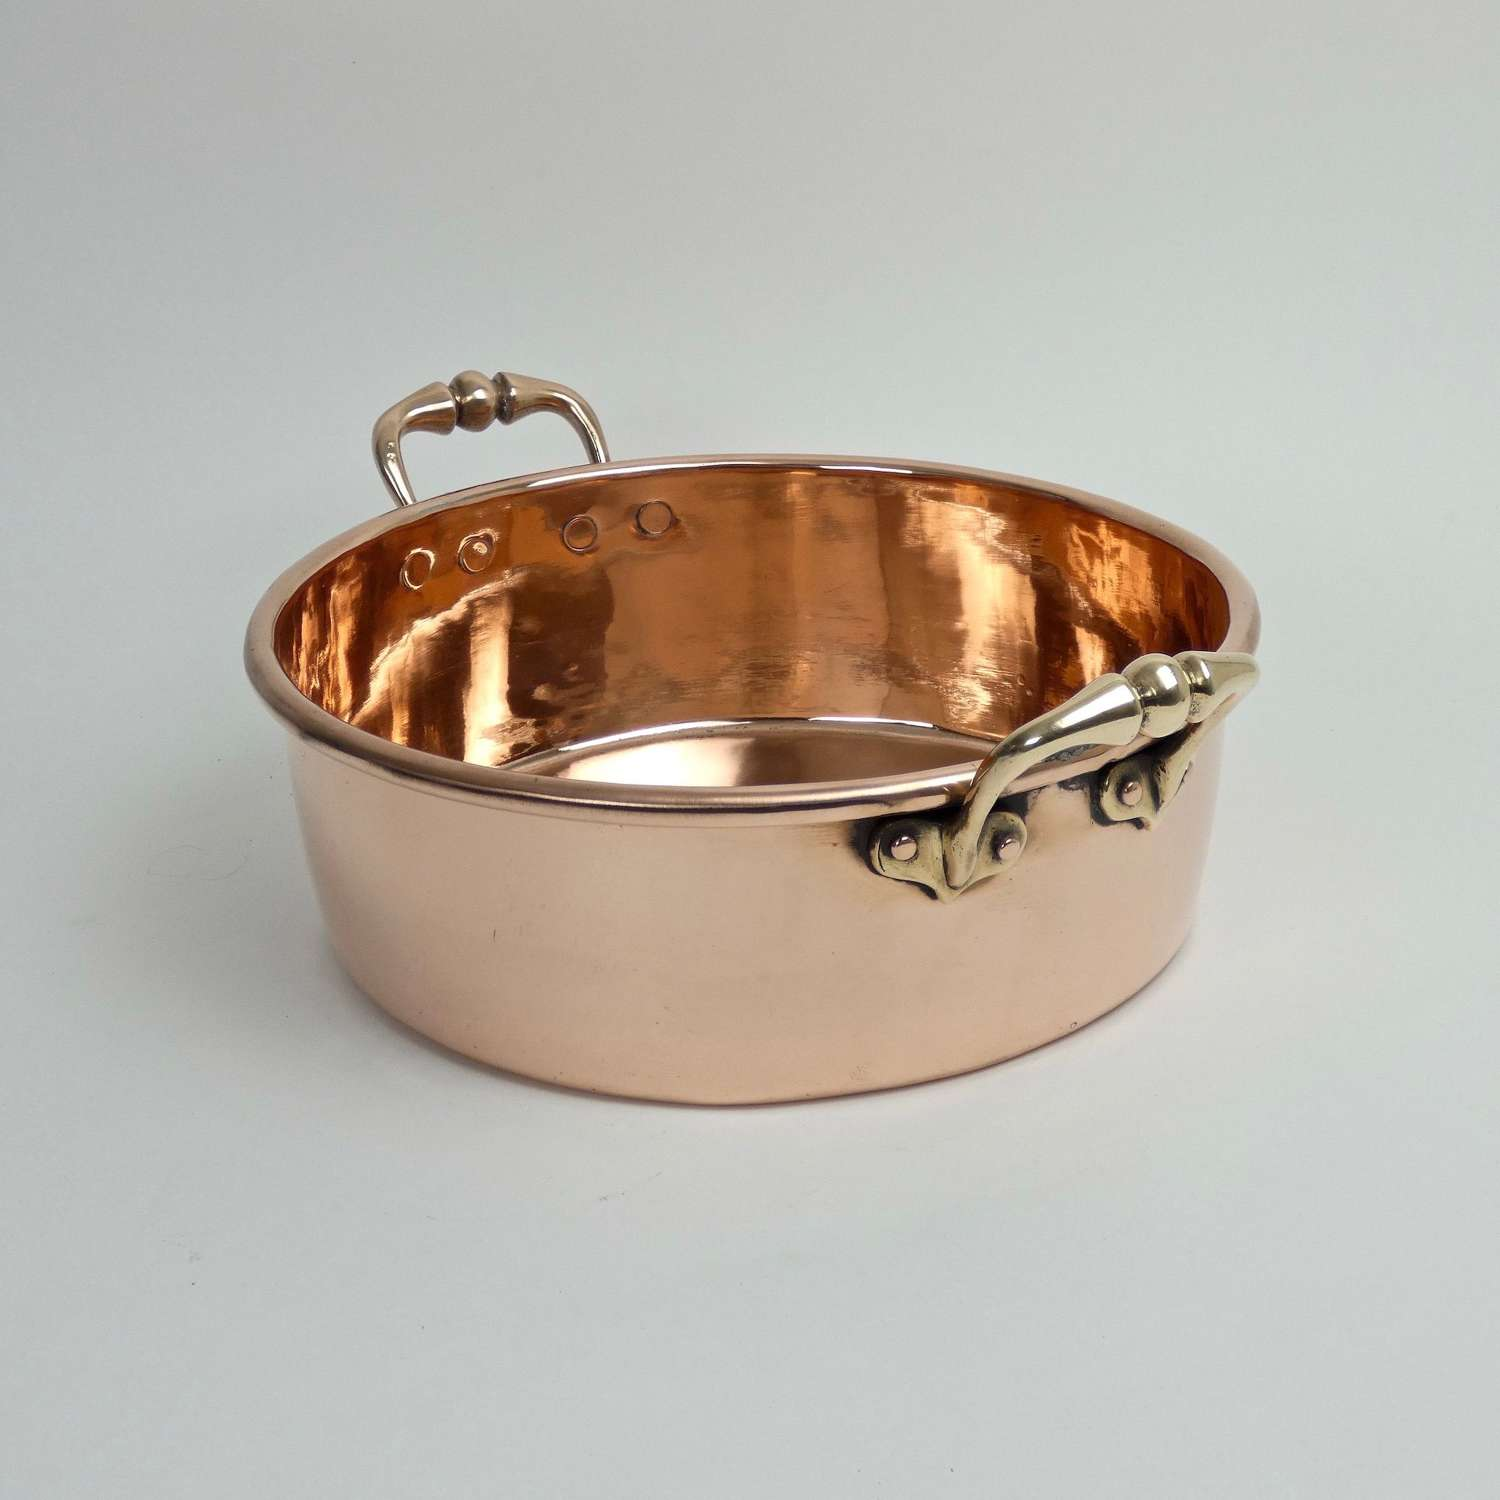 Copper preserve pan with heart shaped fittings